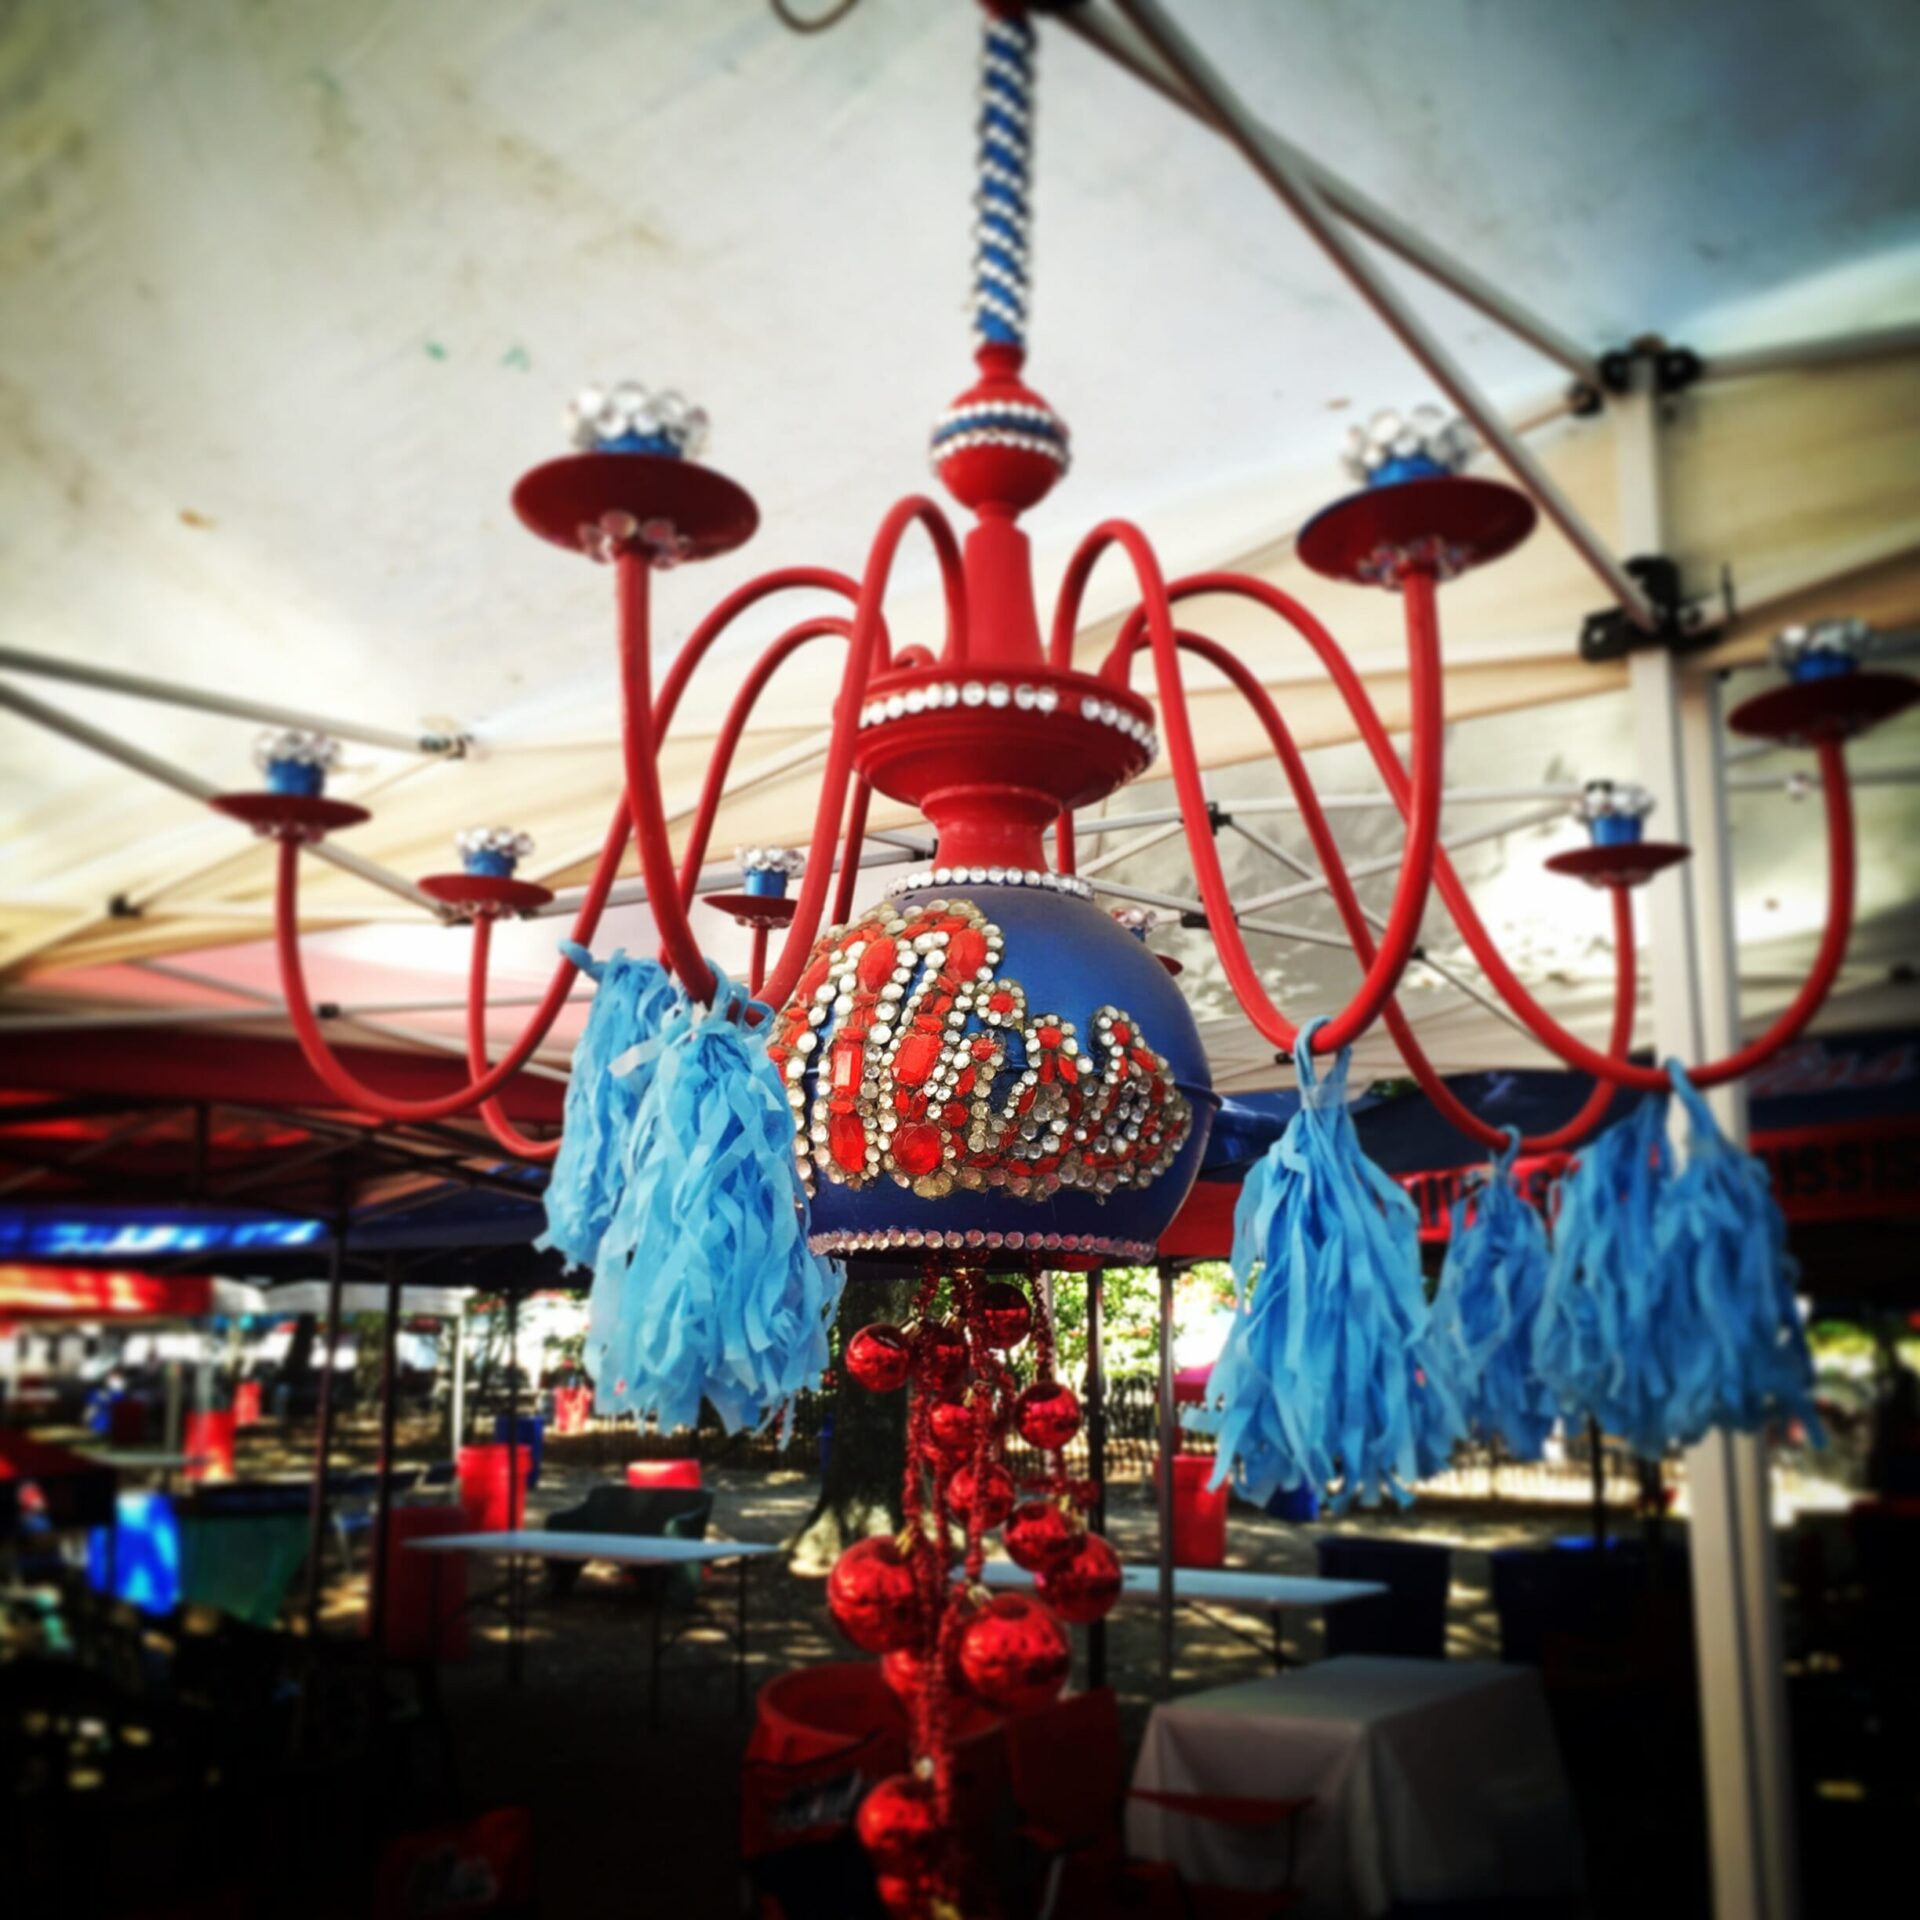 Are you ready take a chandelier tour of the grove hottytoddy take a chandelier tour of the grove hottytoddy arubaitofo Image collections